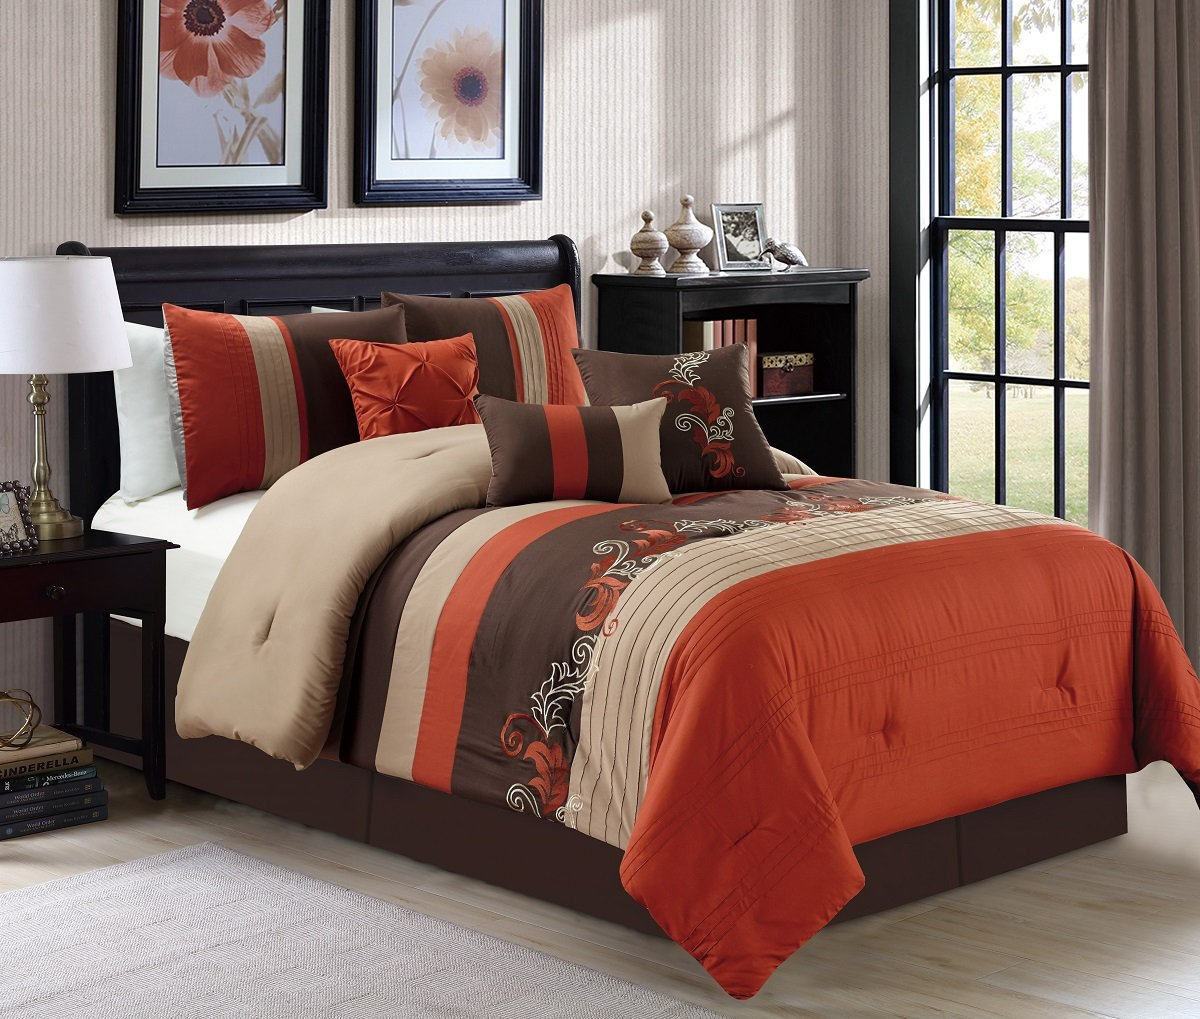 Napa by Chezmoi Collection - 7-piece Luxury Leaves Scroll Embroidery Bedding Comforter Set Queen, Rust Orange/Taupe/Brown